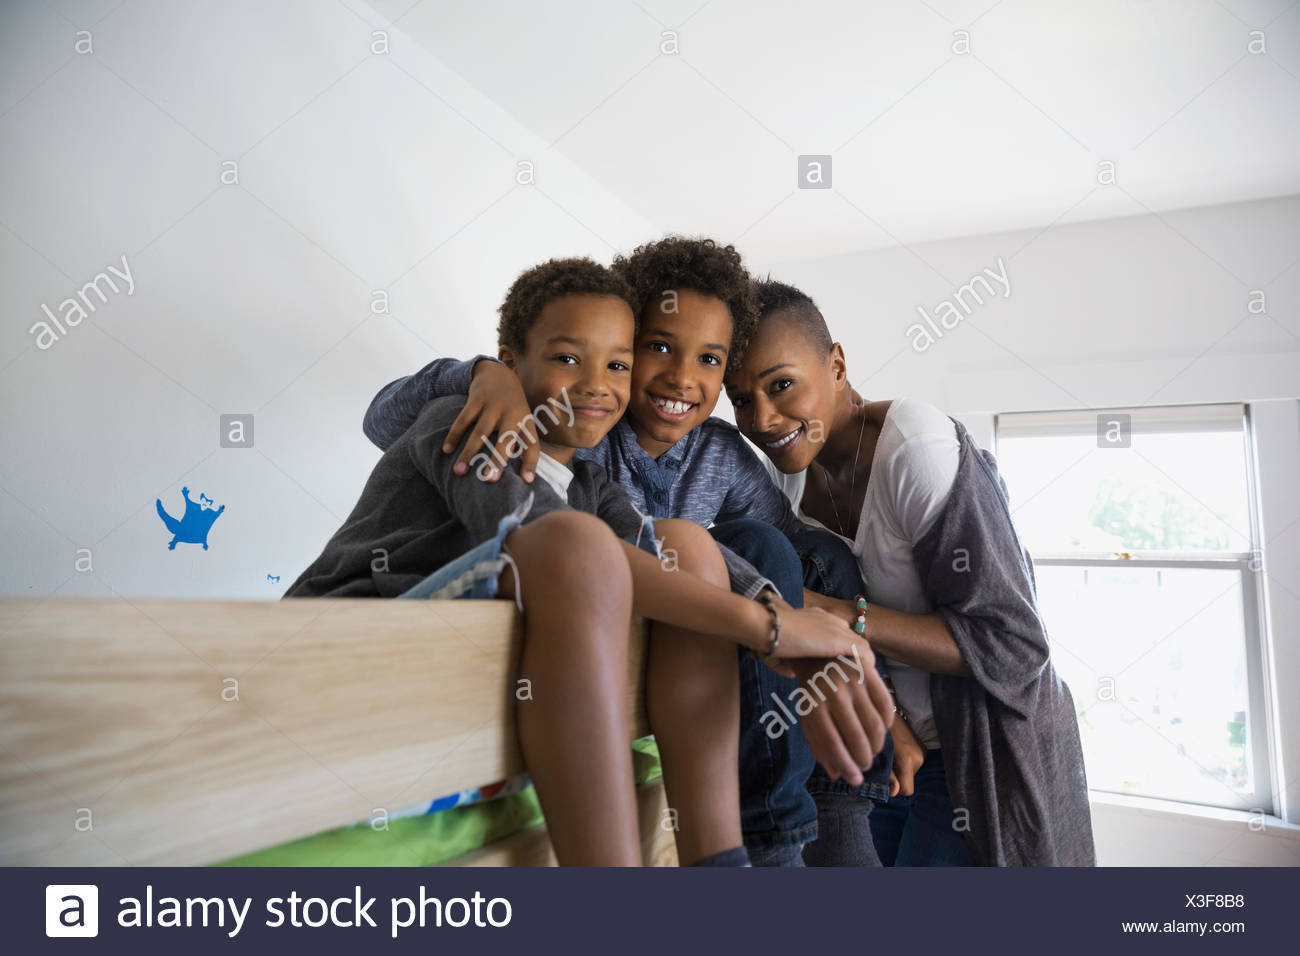 Portrait of smiling family on bunk bed - Stock Image